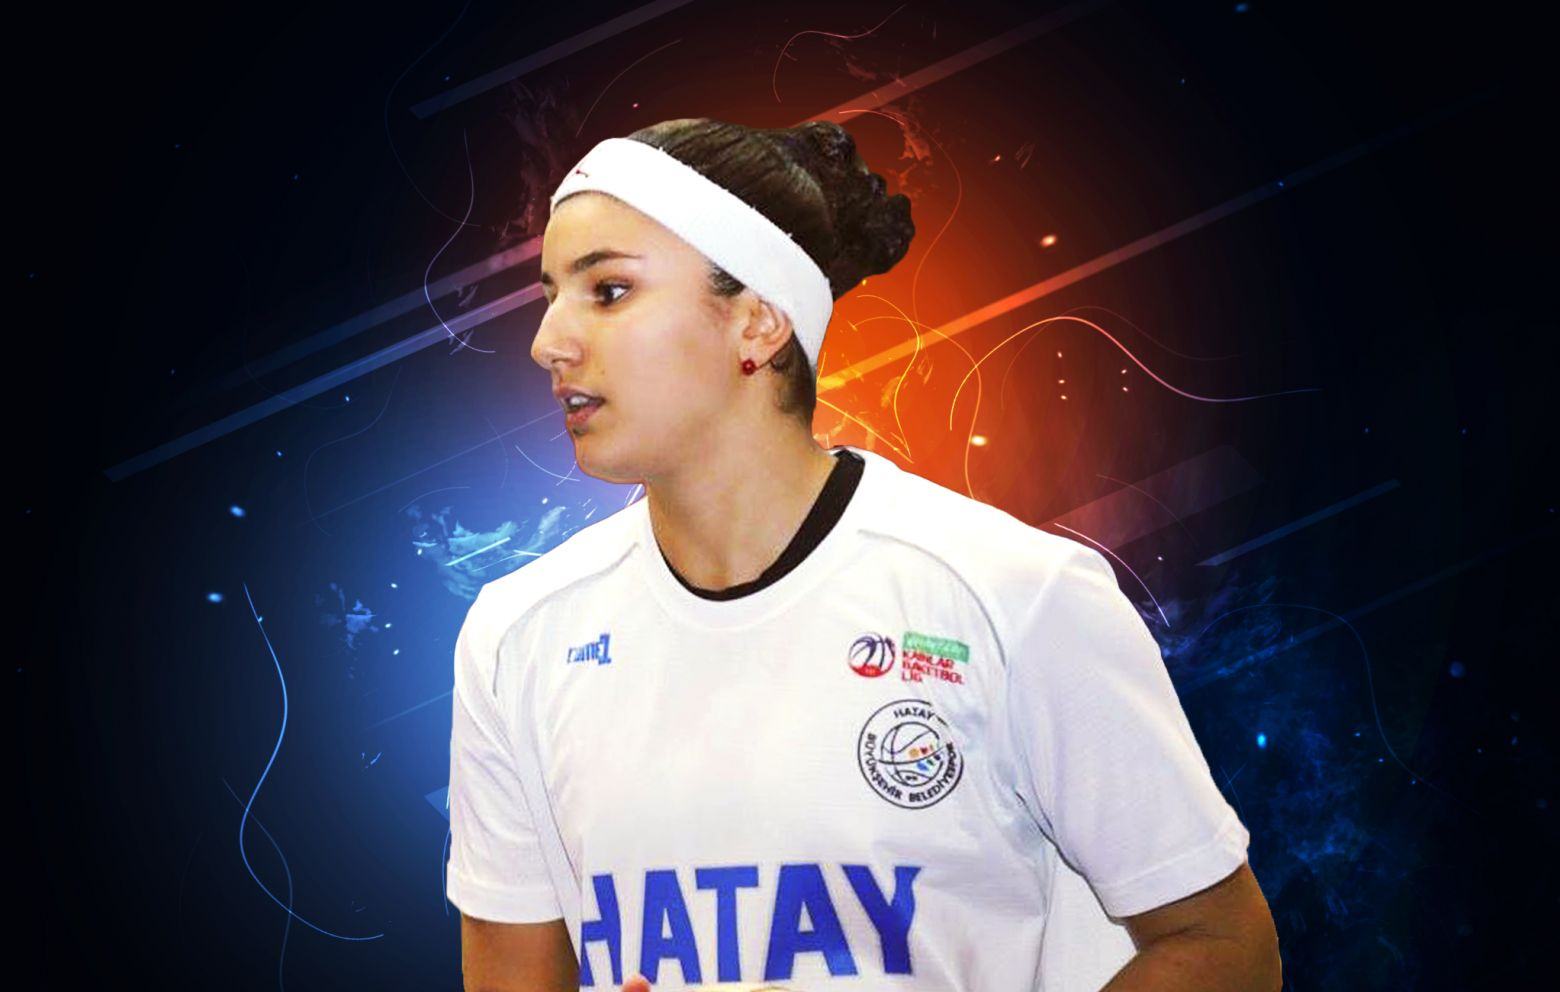 HIND BEN ABDELKADER, MVP in Turkey with 34 points against Istanbul Universiti